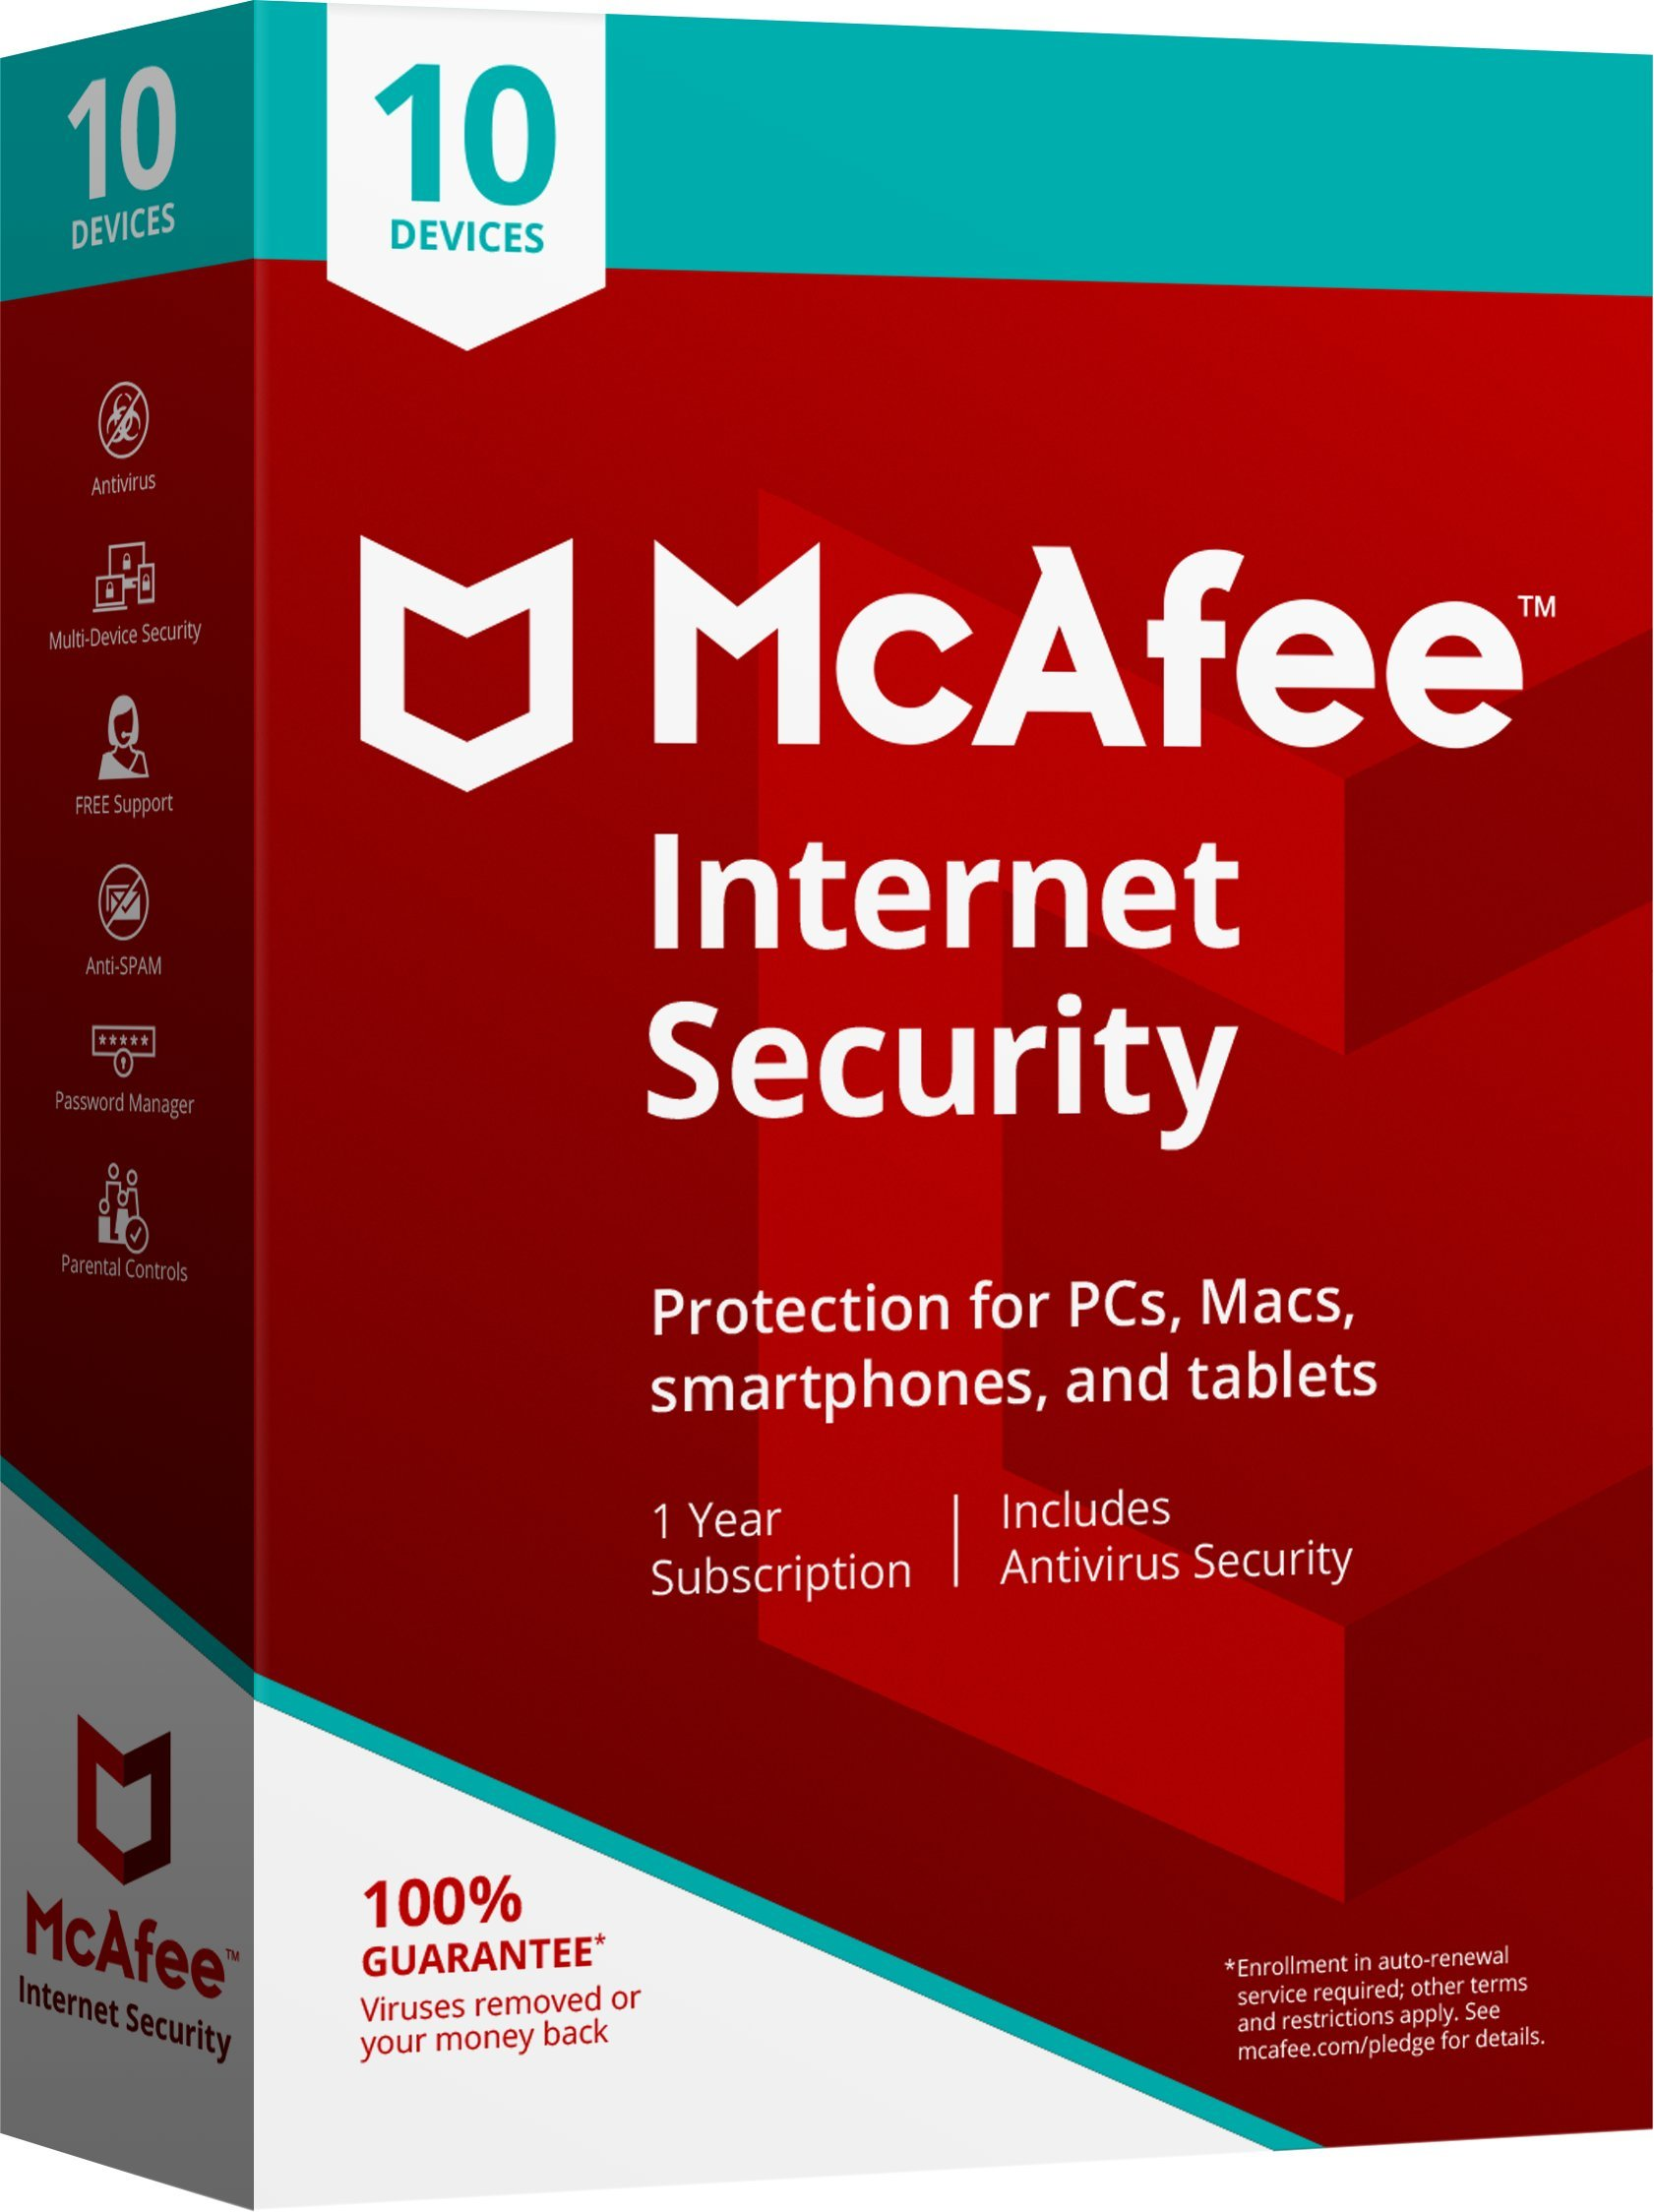 McAfee 2018 Internet Security - 10 Devices [Obsolete] by McAfee